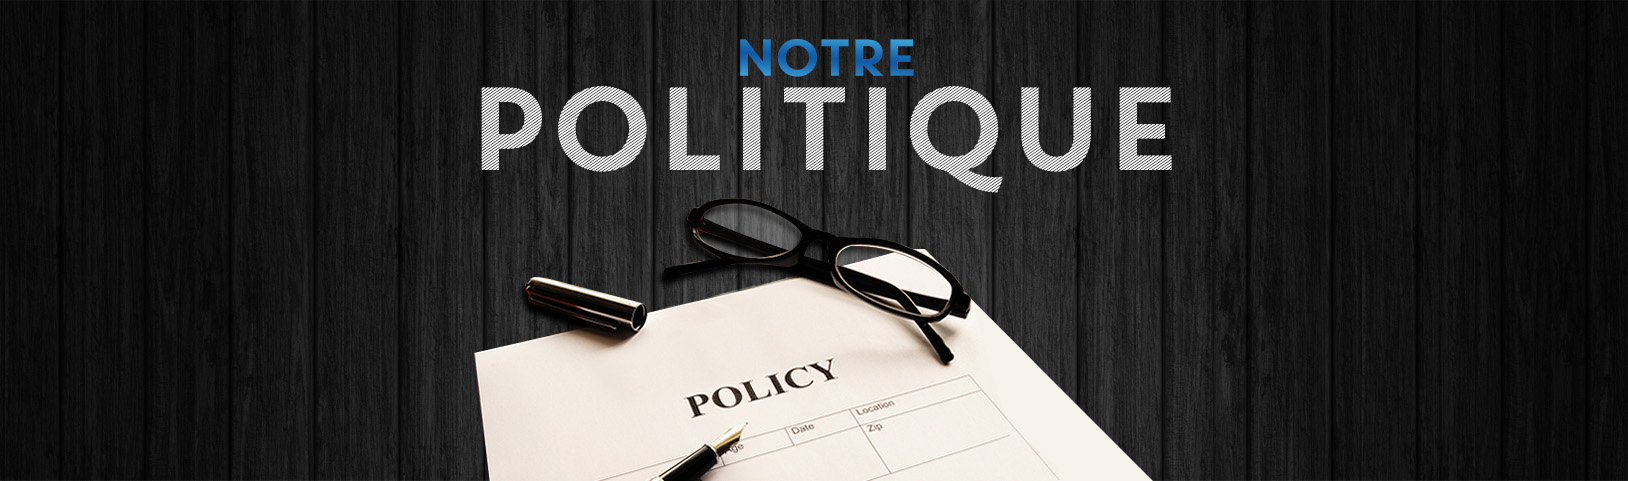 policy-banner-fr